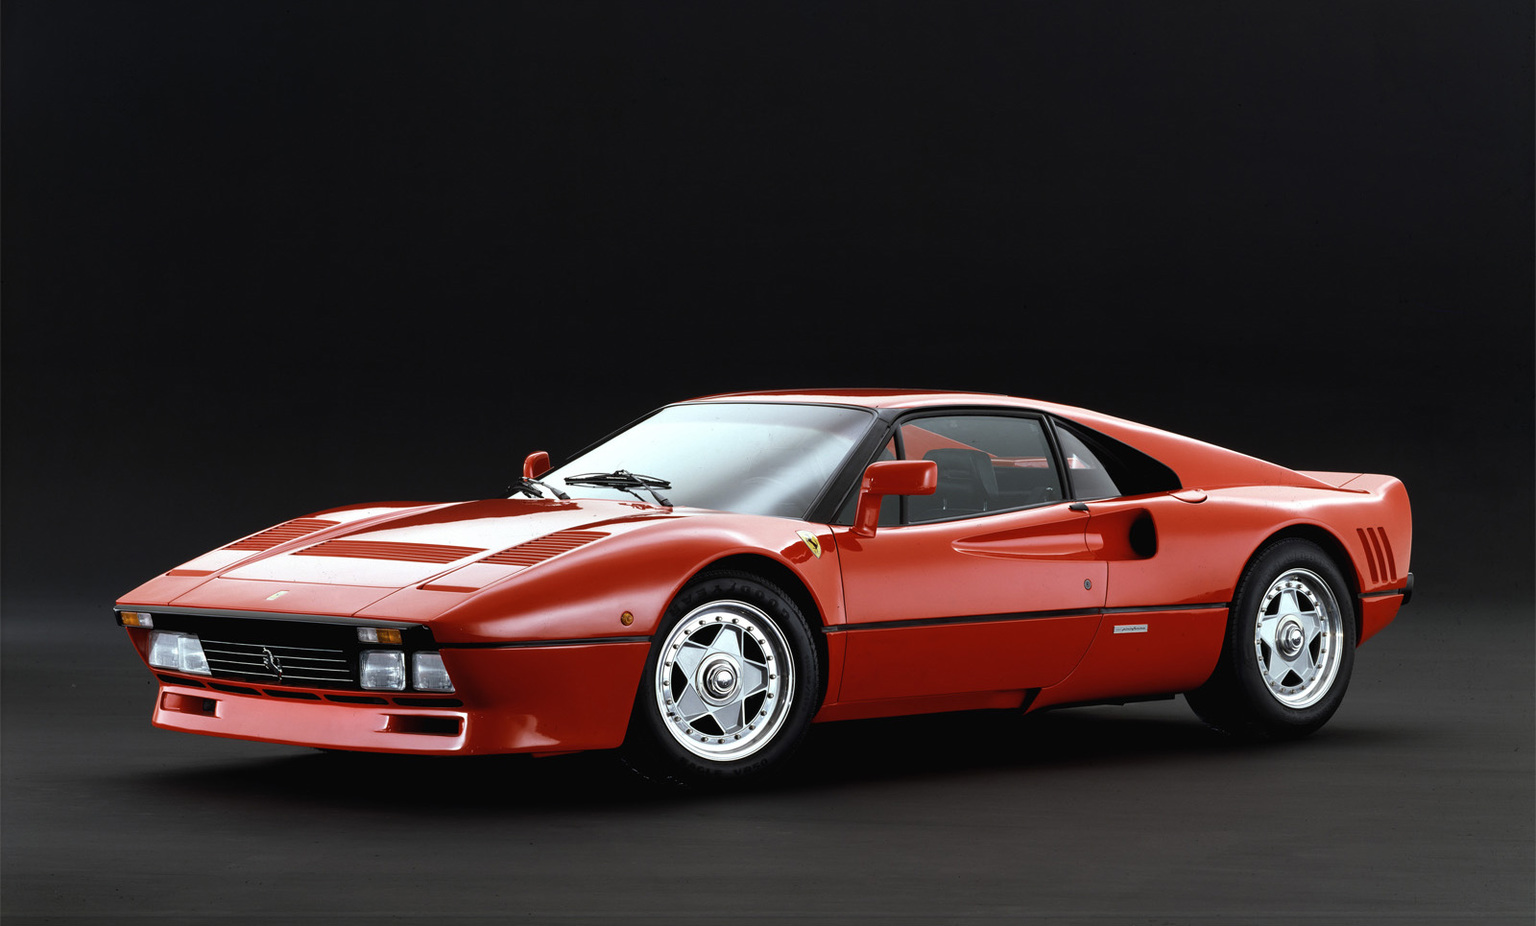 1984 1985 ferrari 288 gto. Black Bedroom Furniture Sets. Home Design Ideas